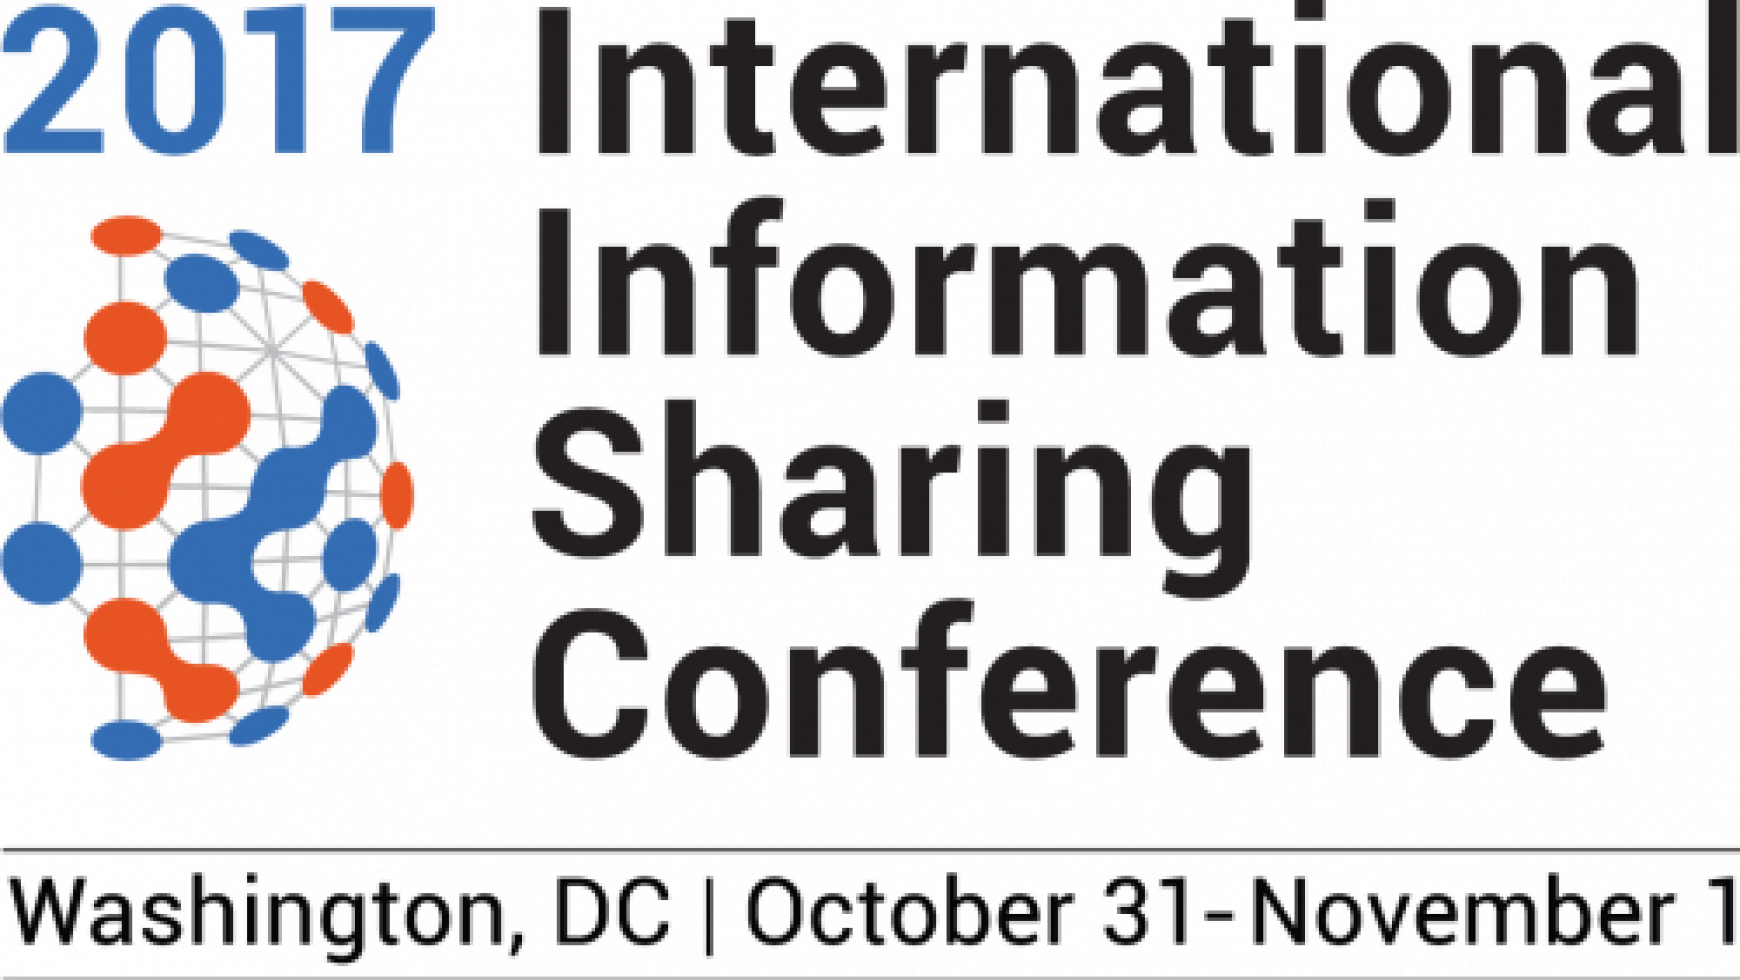 International Information Sharing Conference 2017 Day 1 Afternoon Highlights